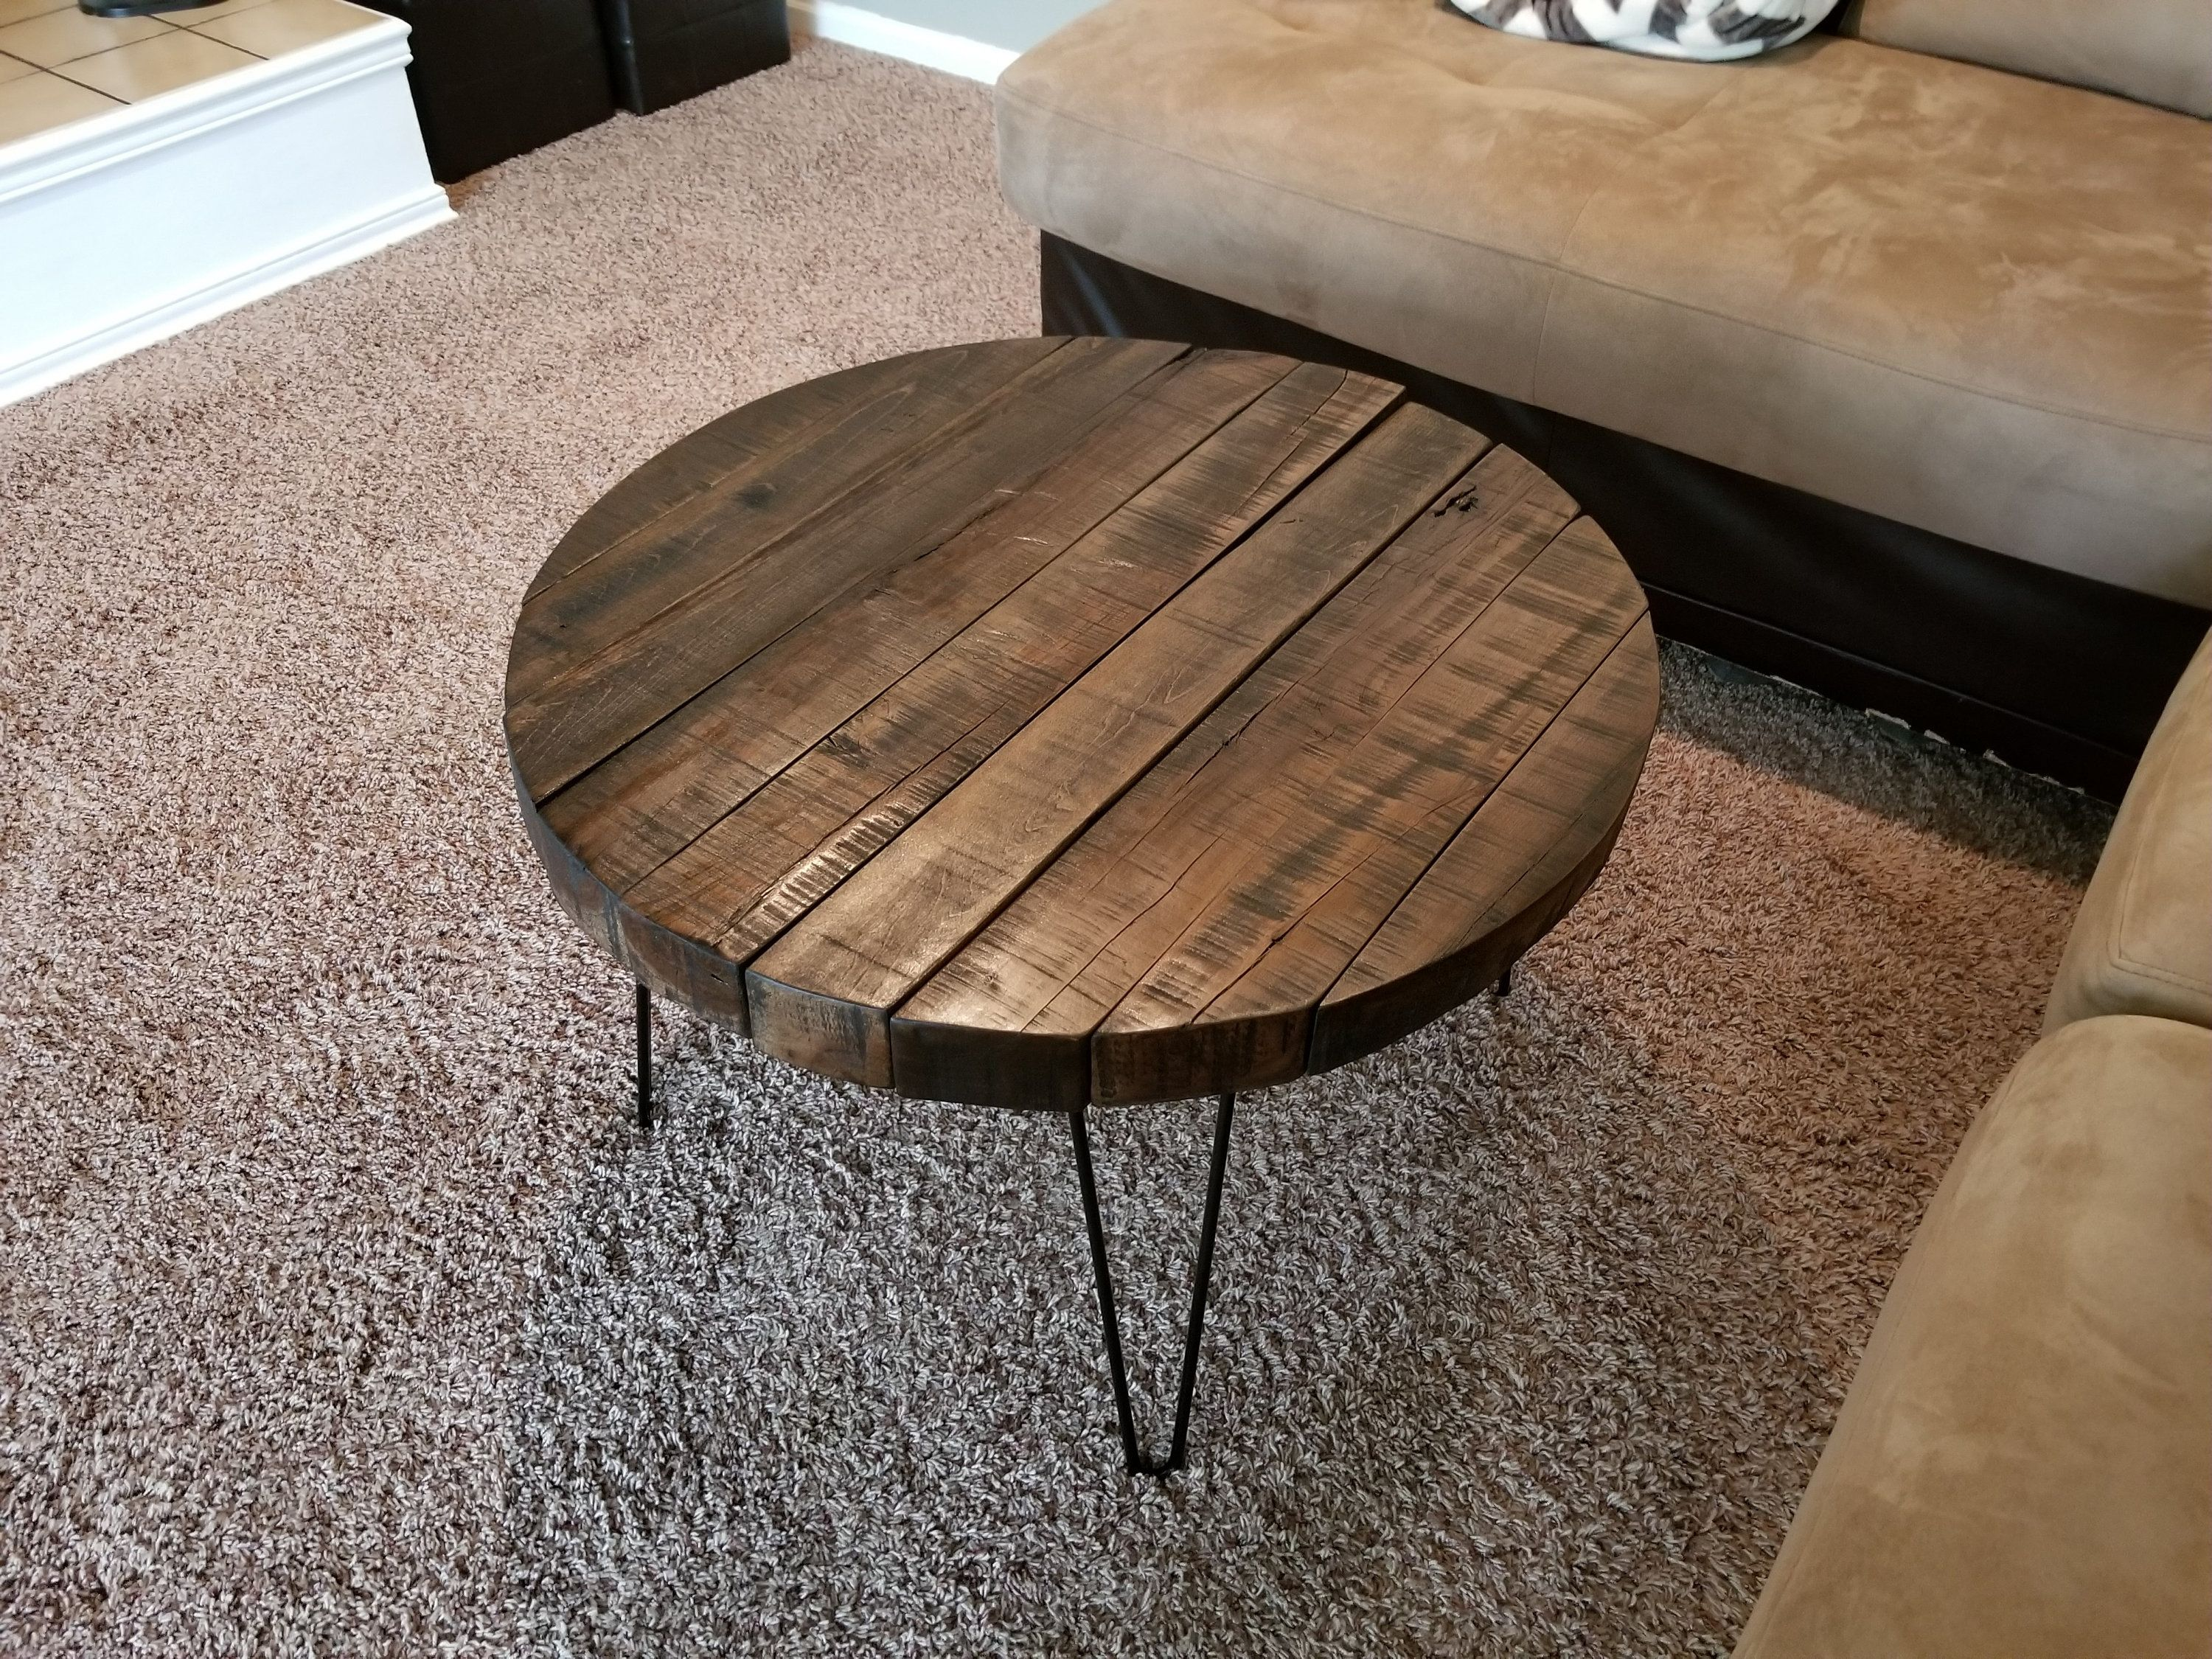 Reclaimed Wood Round Coffee Table With Hairpin Legs Etsy Round Wood Coffee Table Reclaimed Wood Coffee Table Coffee Table Wood